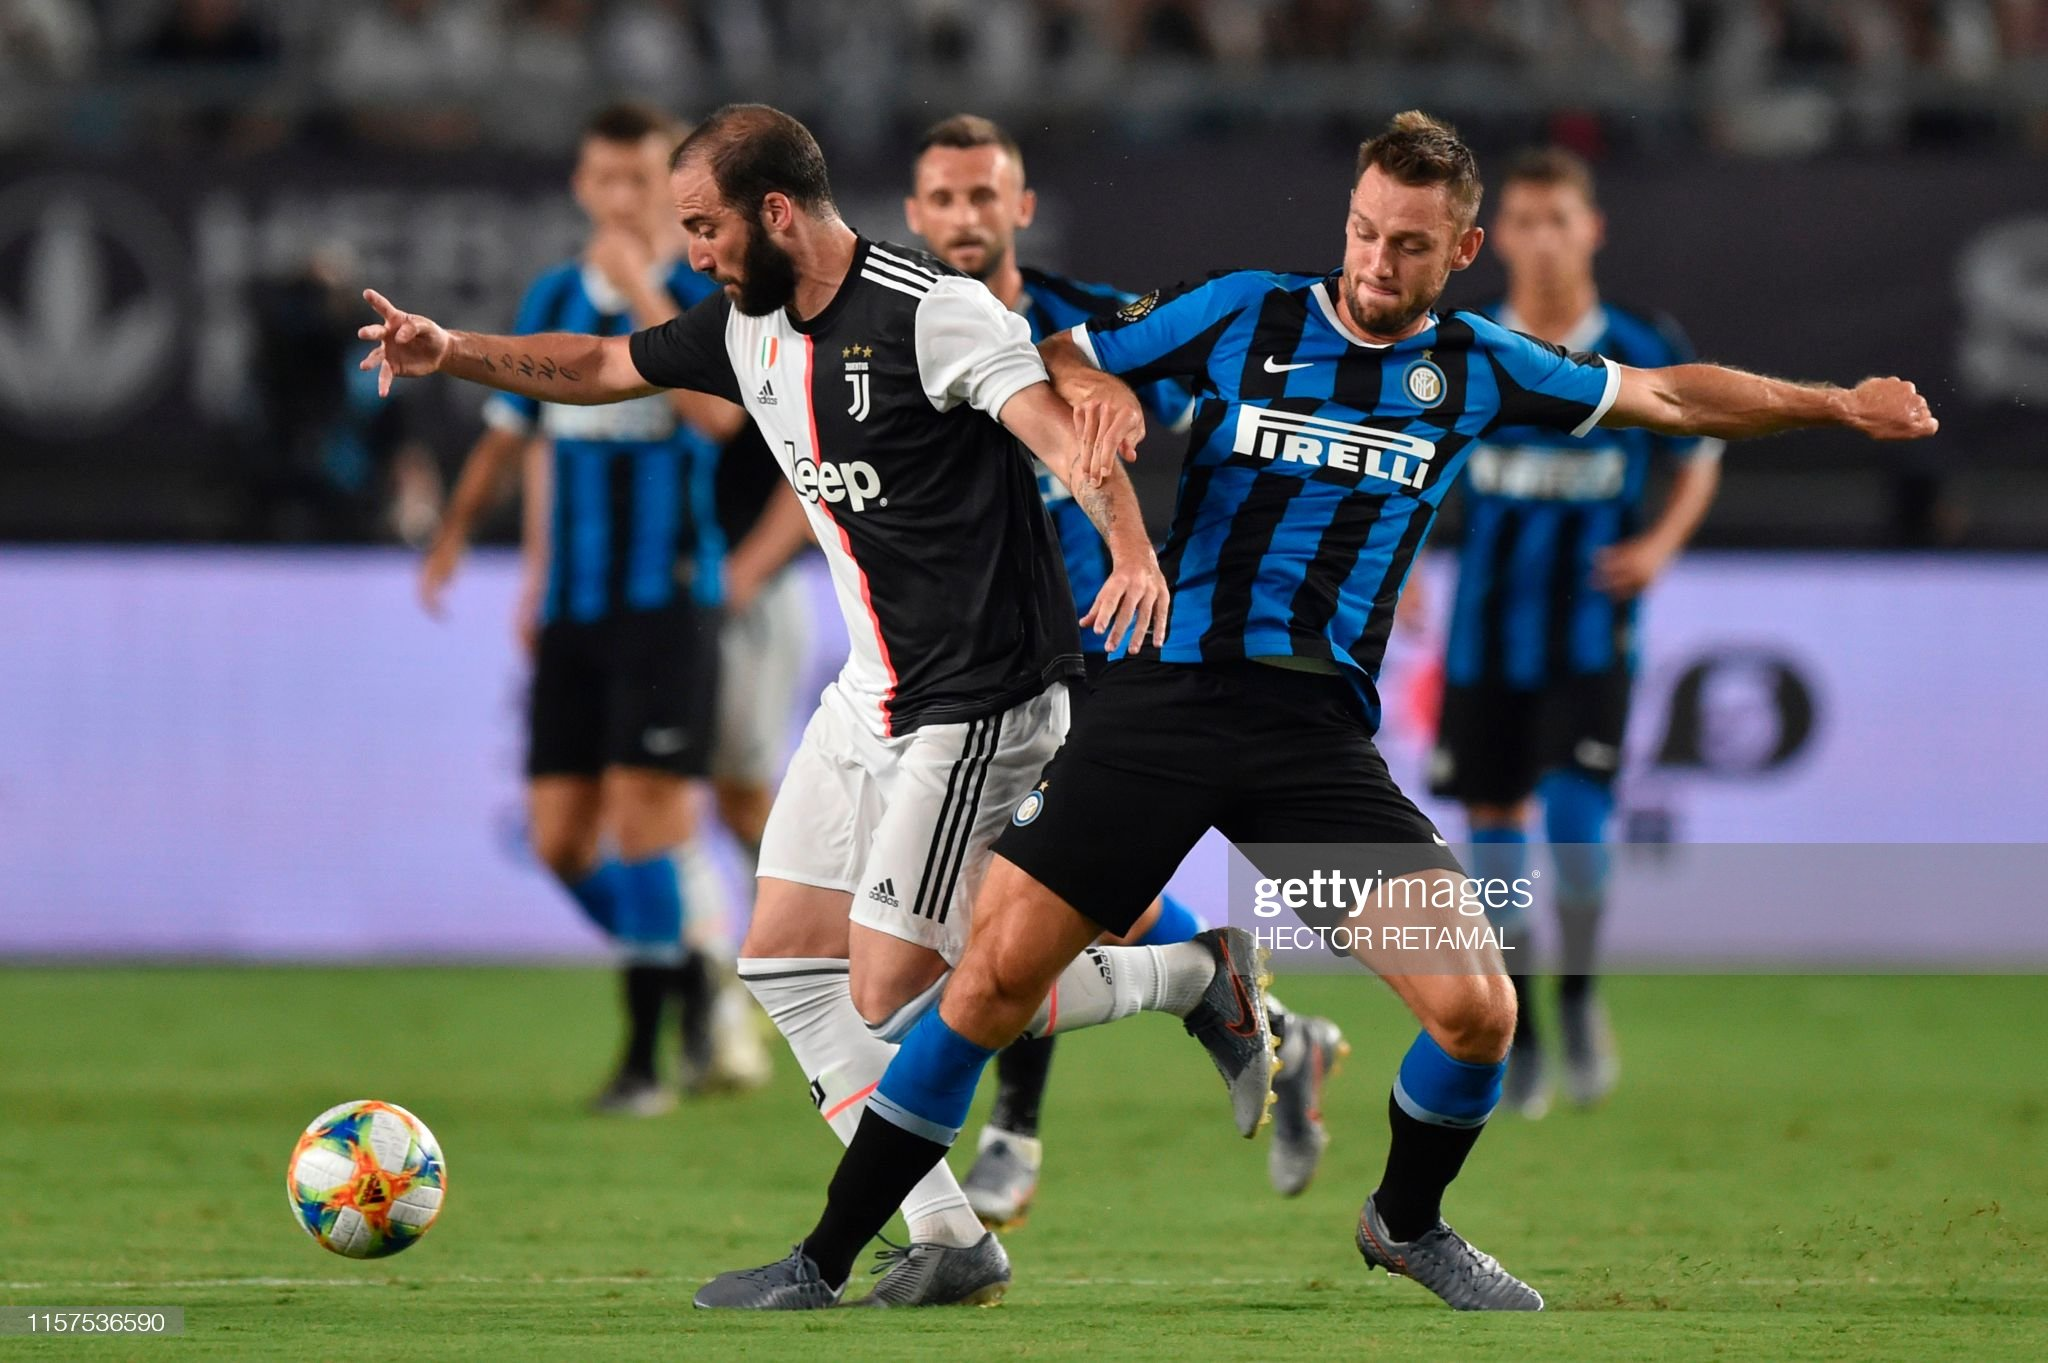 Inter v Juventus preview, prediction and odds